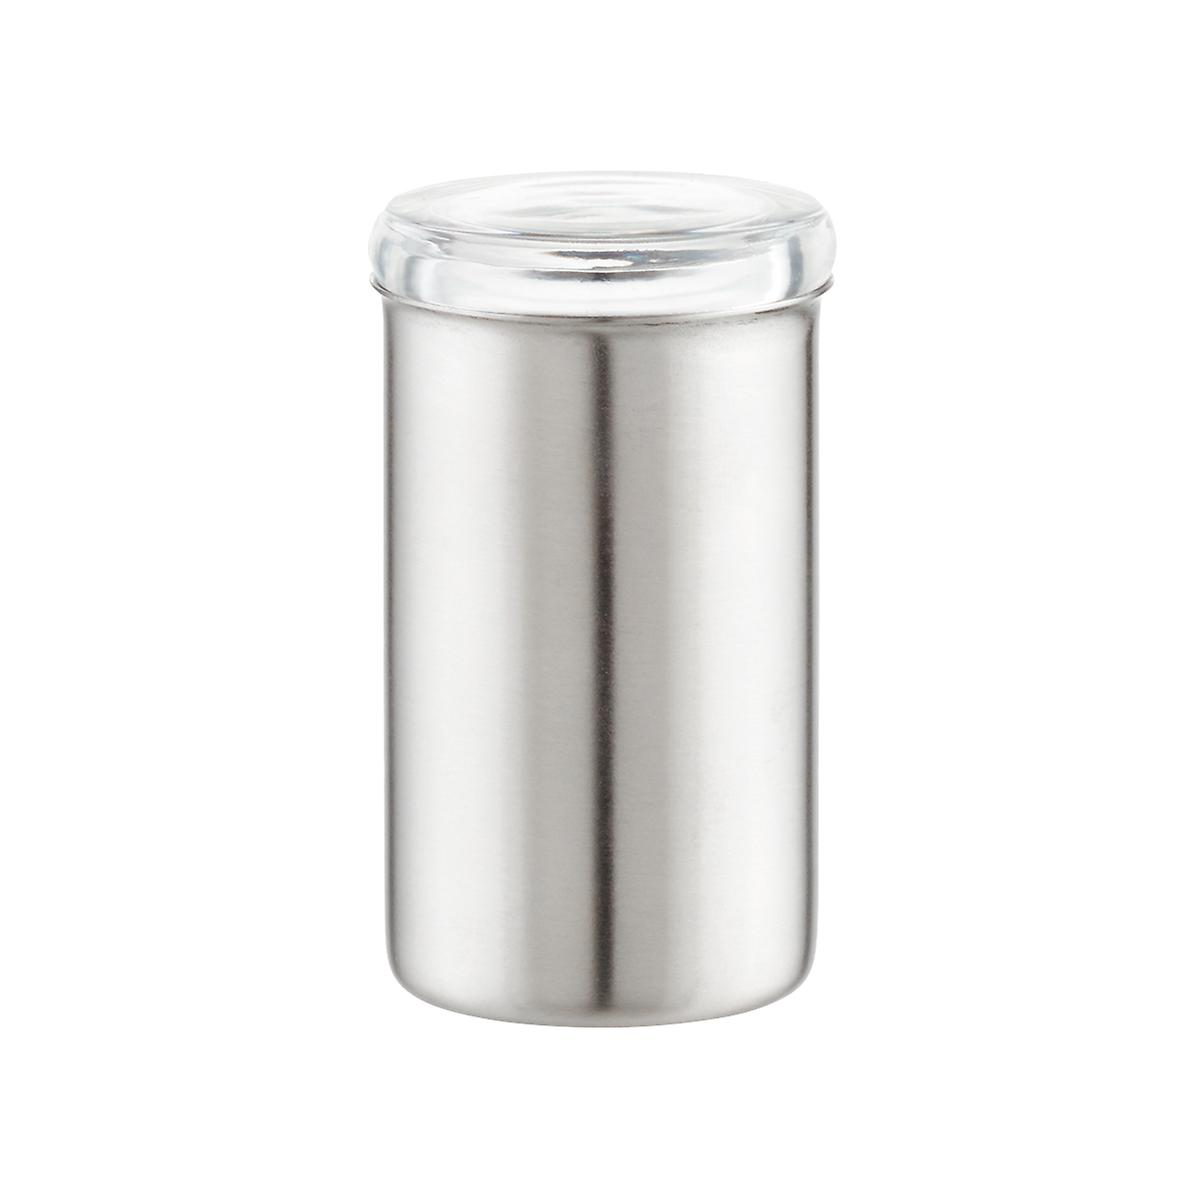 Stainless Steel Spice Jar with Acrylic Lid